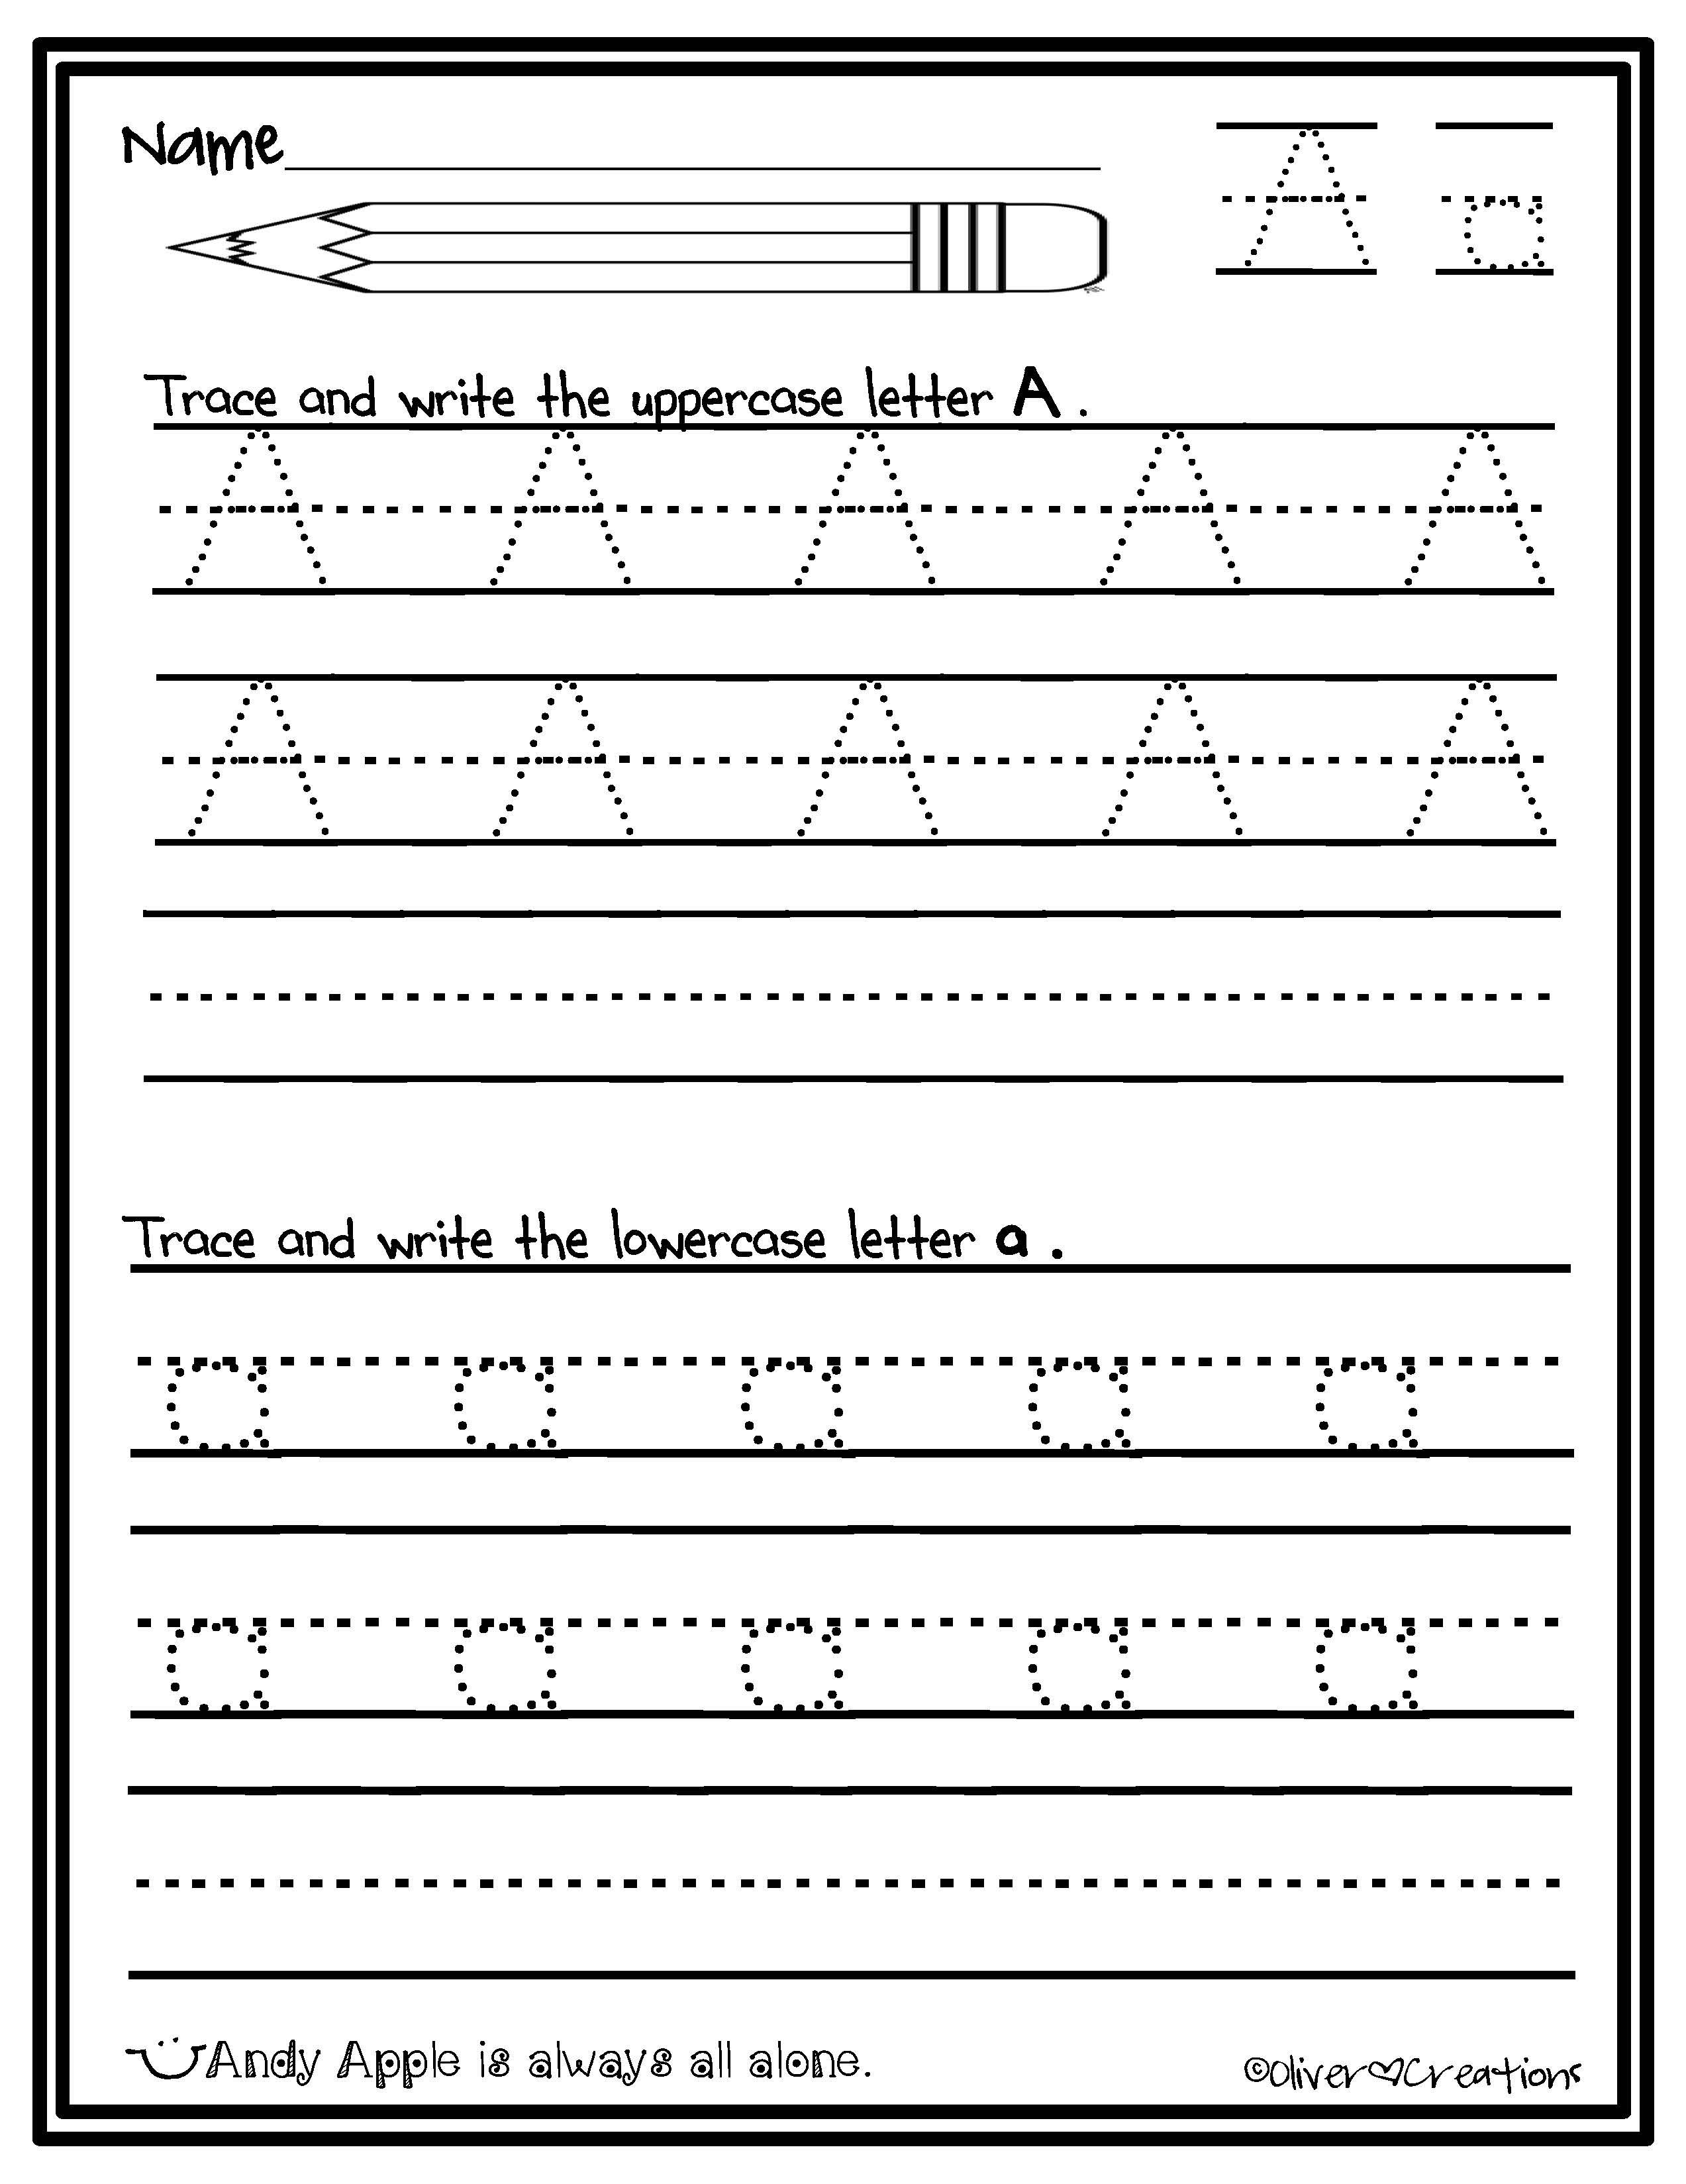 Enhancing legible handwriting formation for kids. TPT product: Letter  tracing packet includes both uppercase and lowercase letters A-Z.